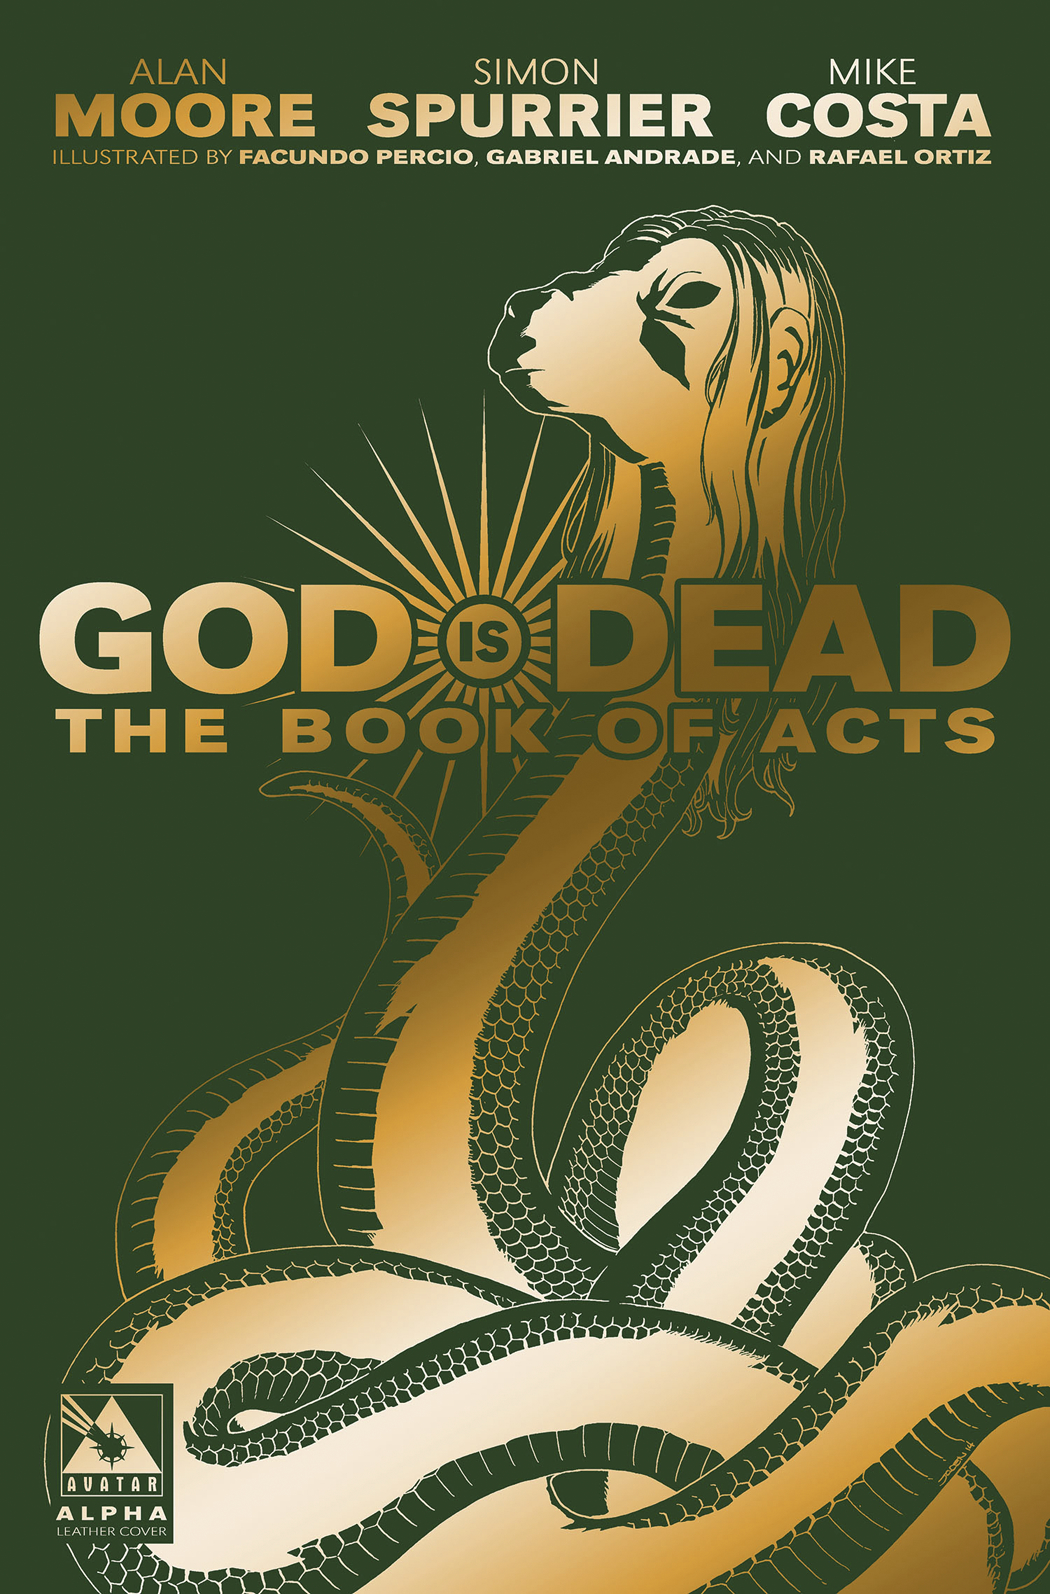 GOD IS DEAD BOOK OF ACTS DLX COLL BOX SET